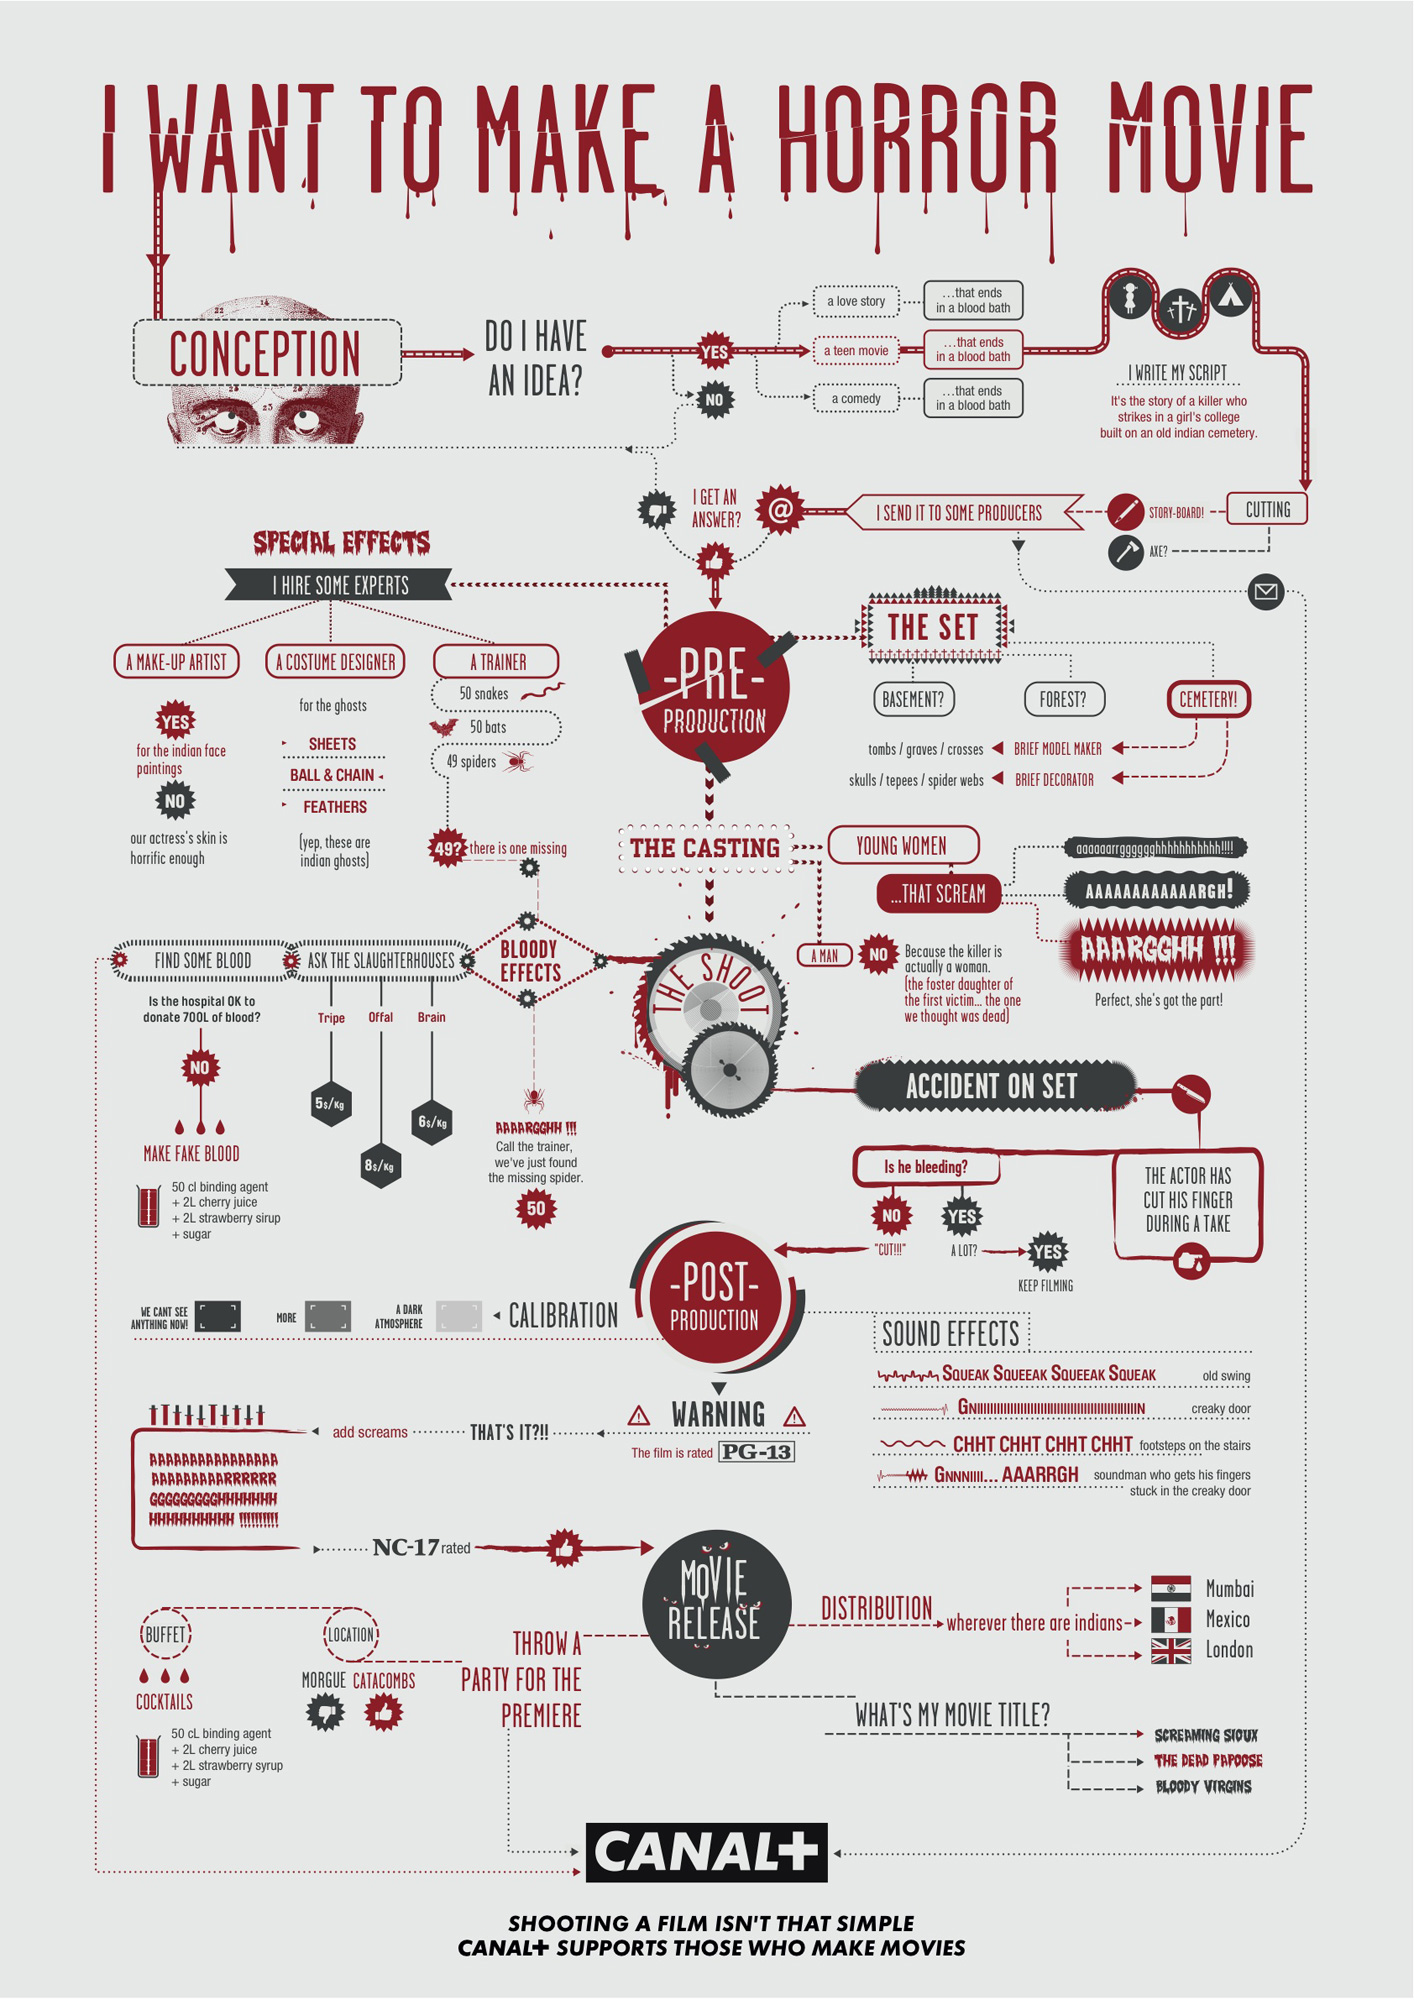 Canal plus film making flow charts the inspiration room canal plus film making flow charts nvjuhfo Images